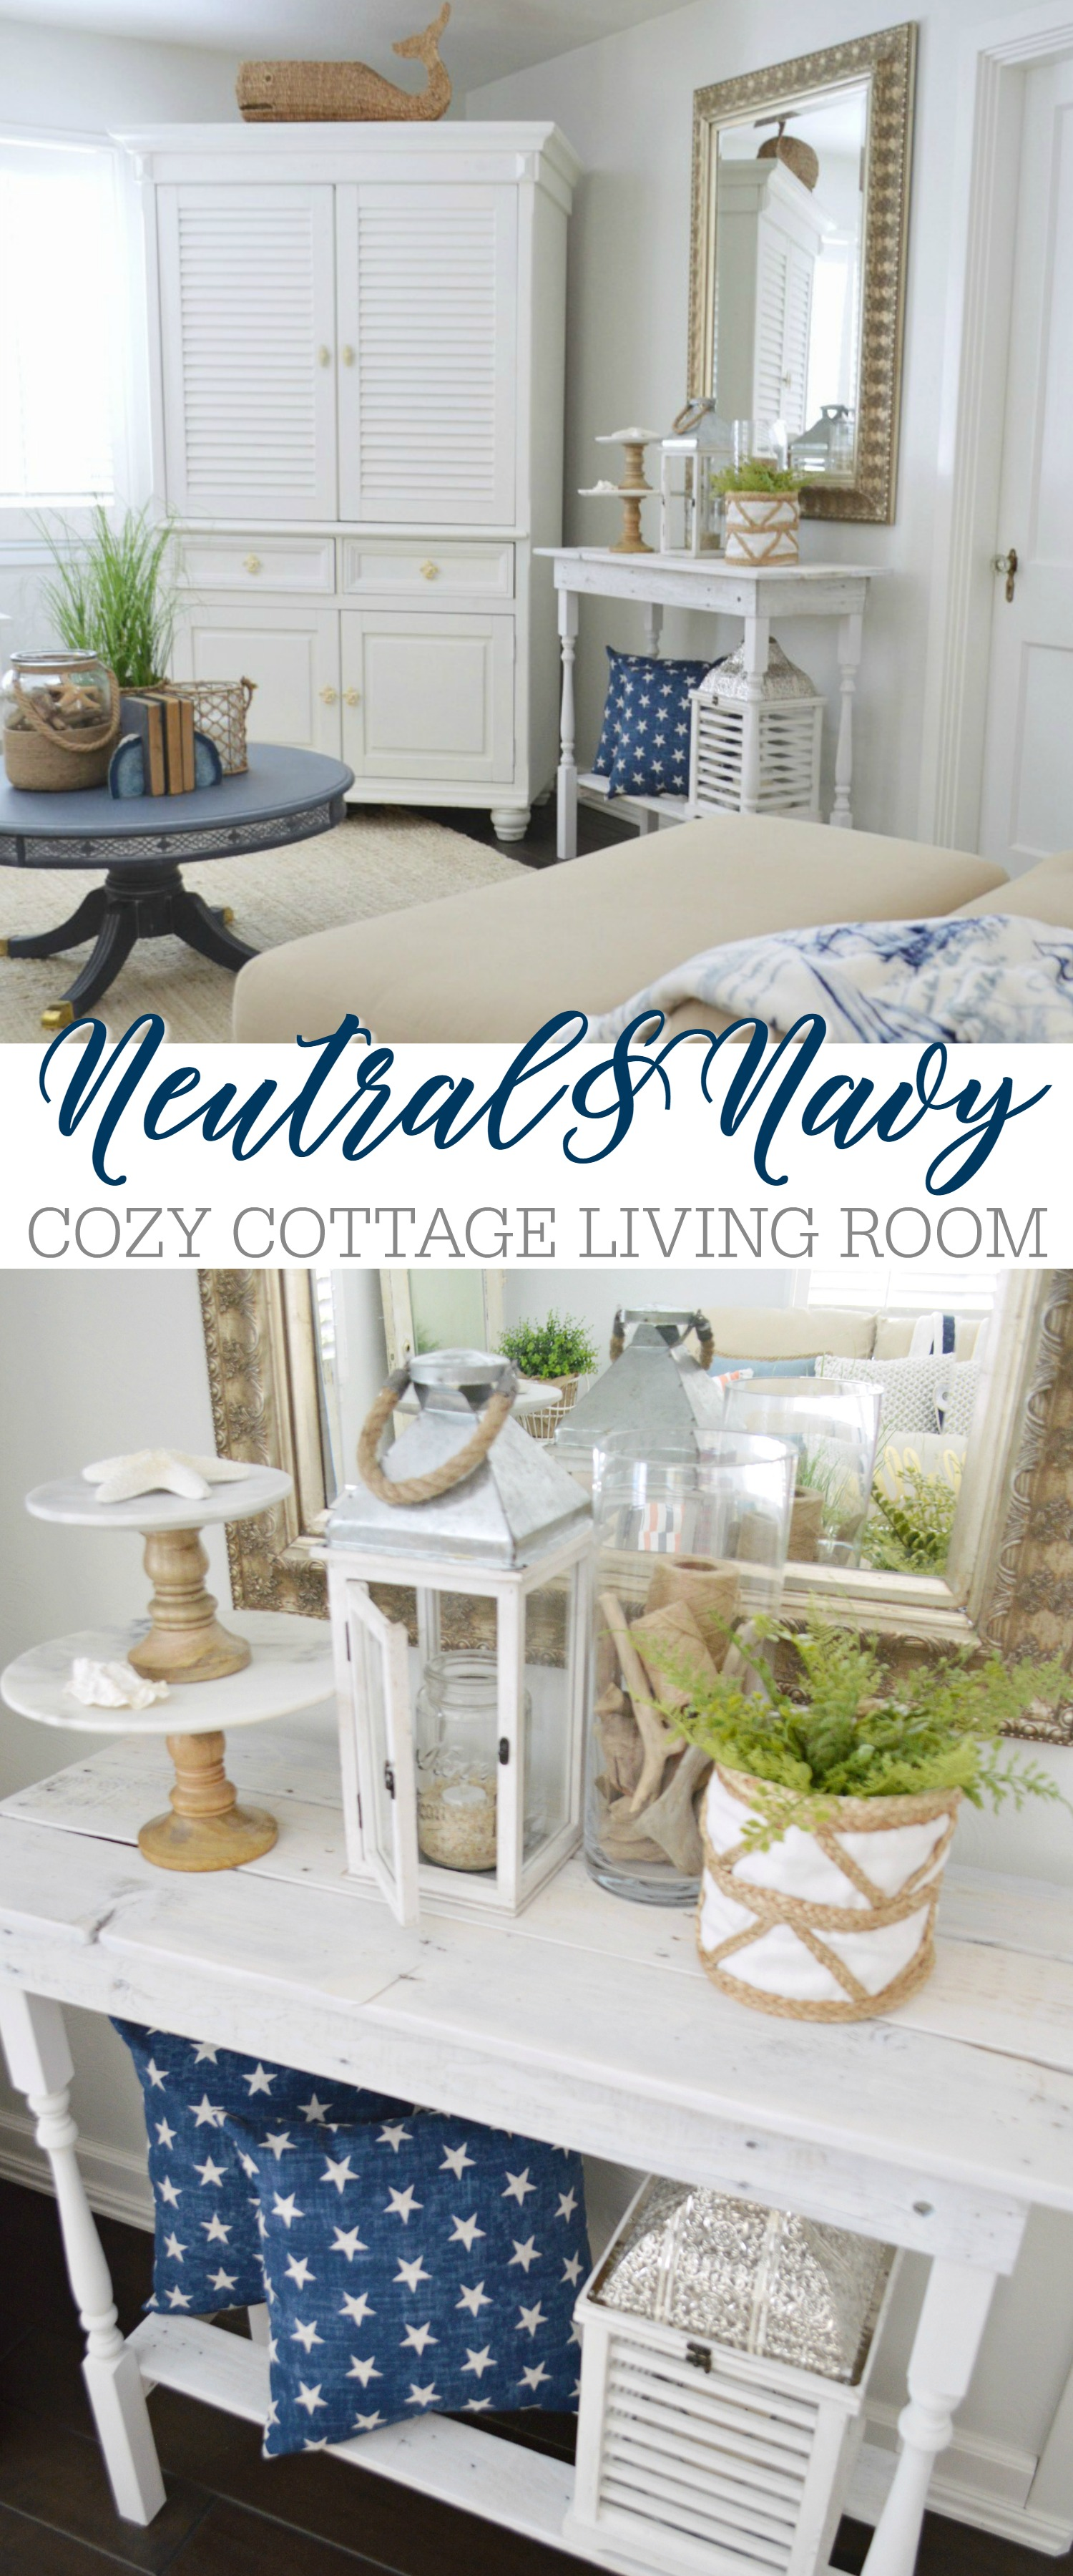 neutral and navy cozy cottage living room - Fox Hollow Cottage